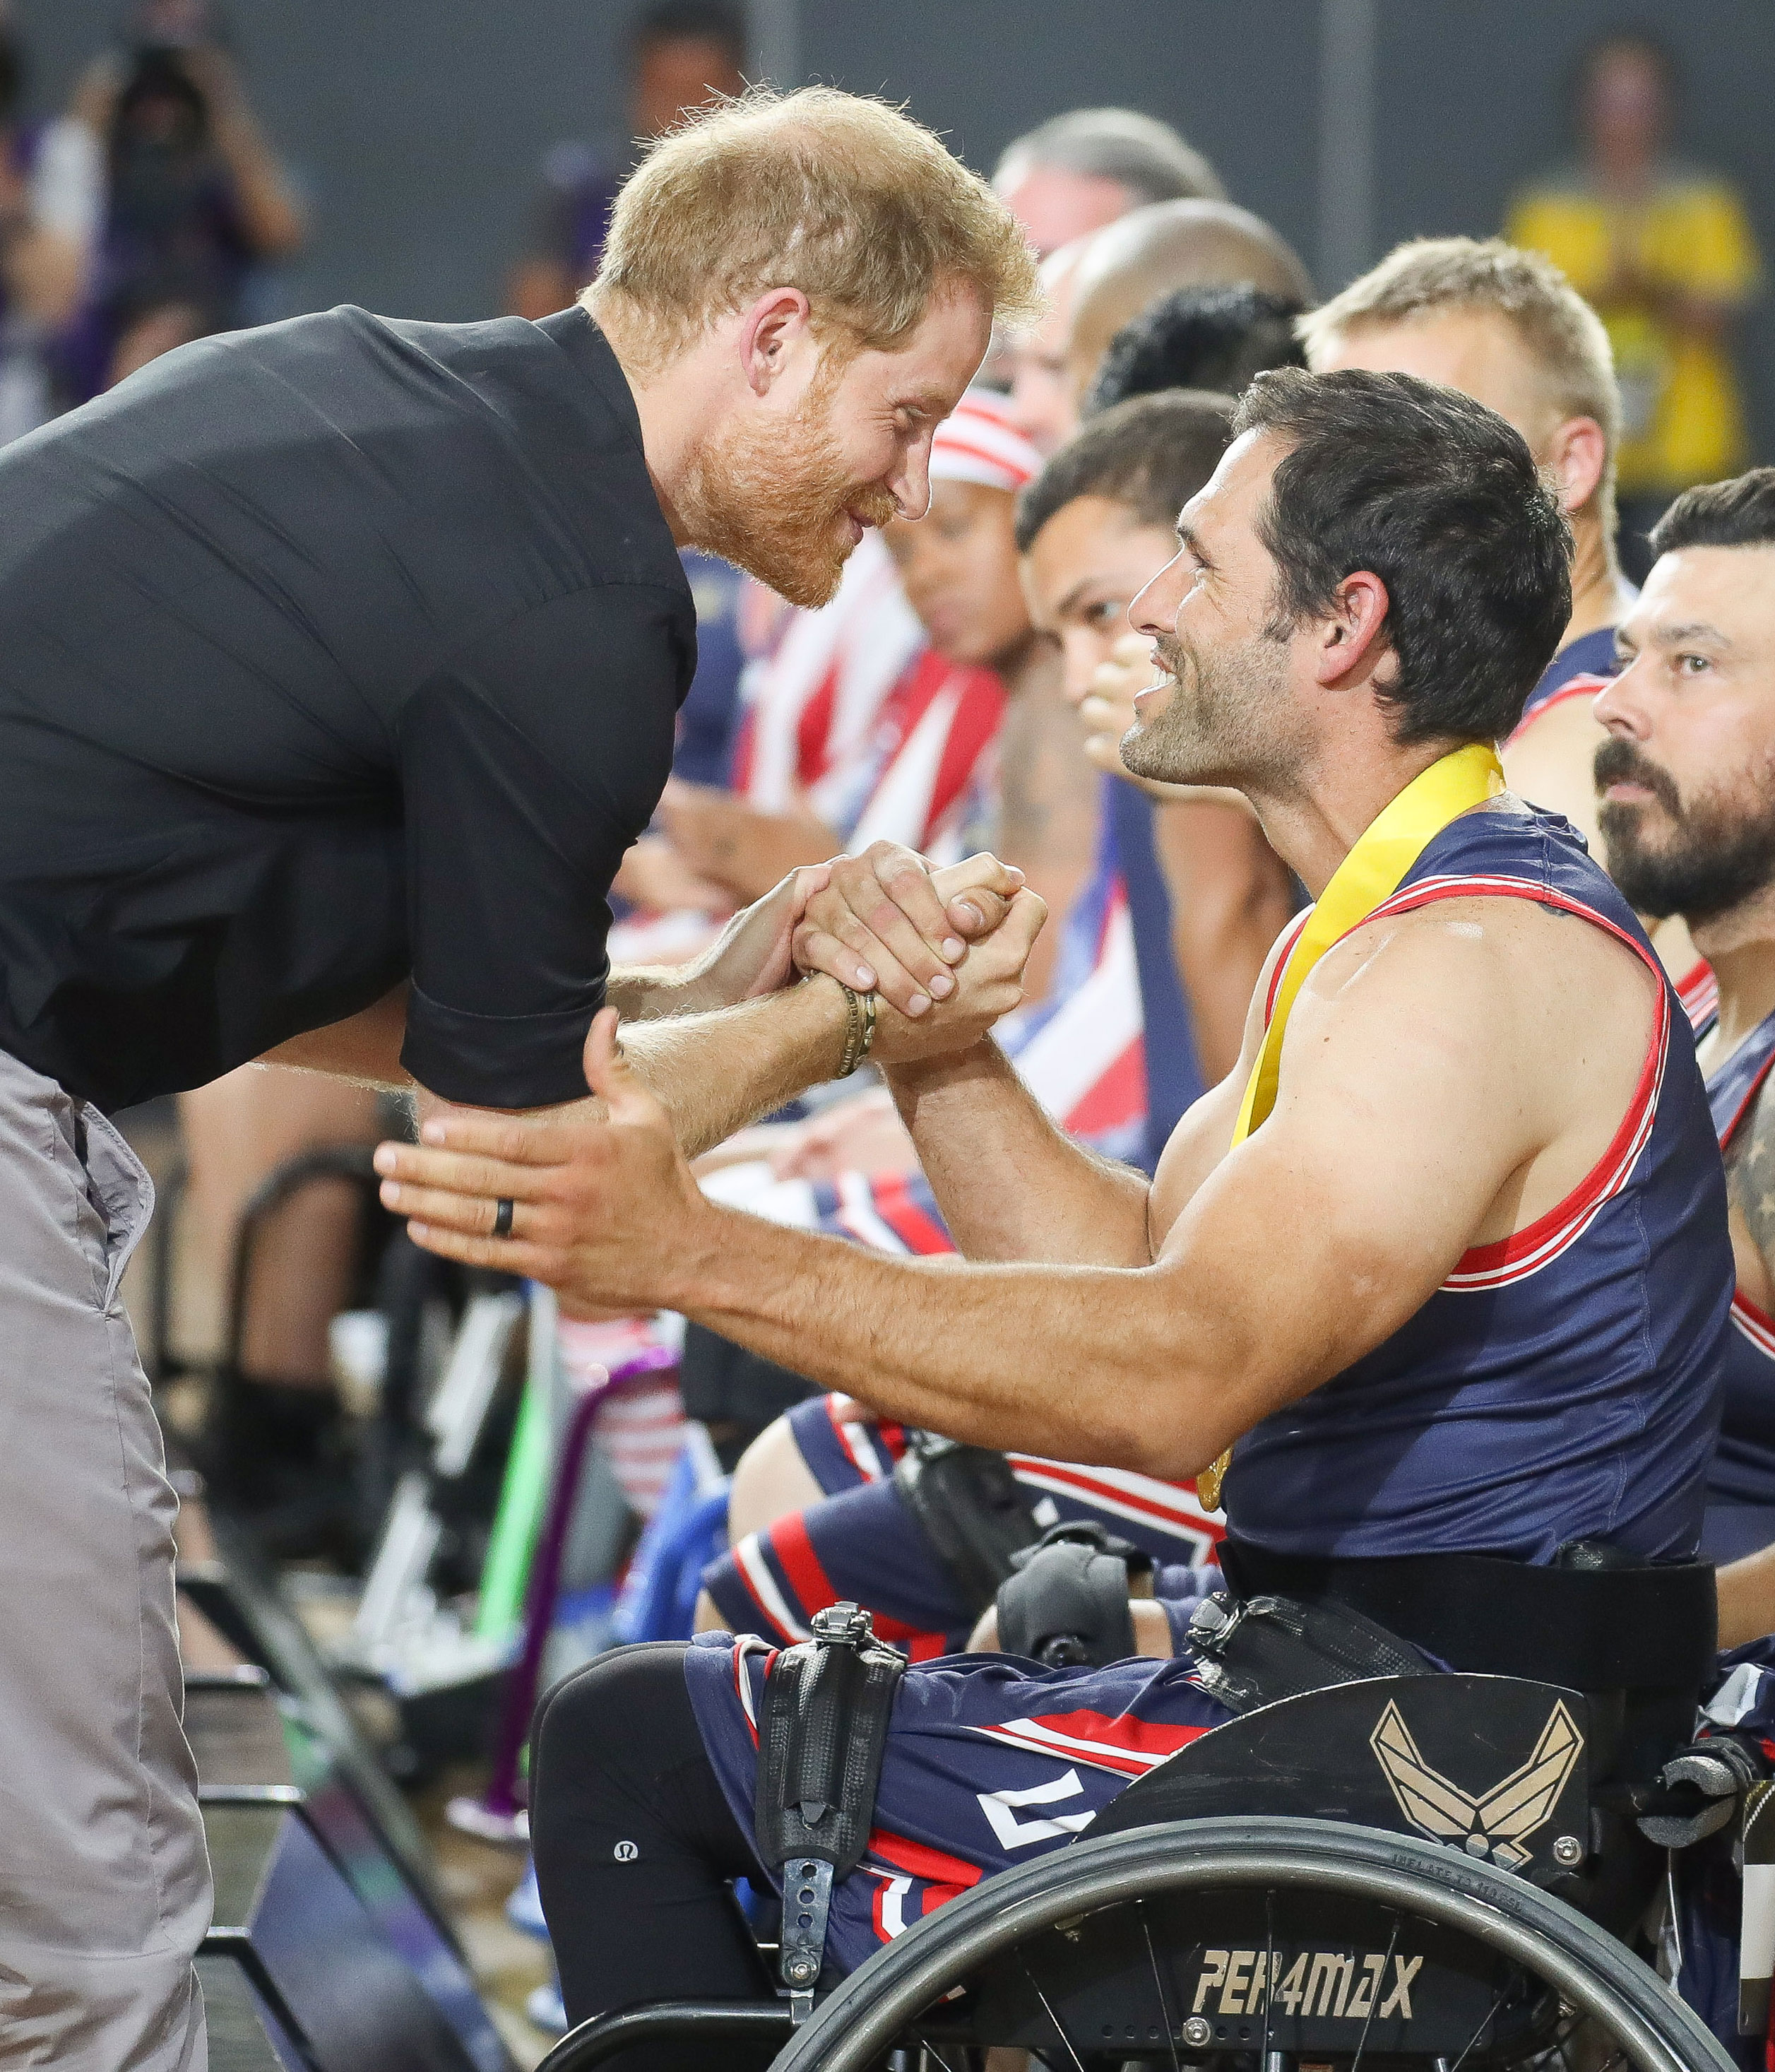 Prince Harry, Duke of Sussex congratulating the United States team in the Wheelchair Basketball after winning Gold in the finals during day eight of the Invictus Games Sydney 2018 at on October 27, 2018 in Sydney, Australia.